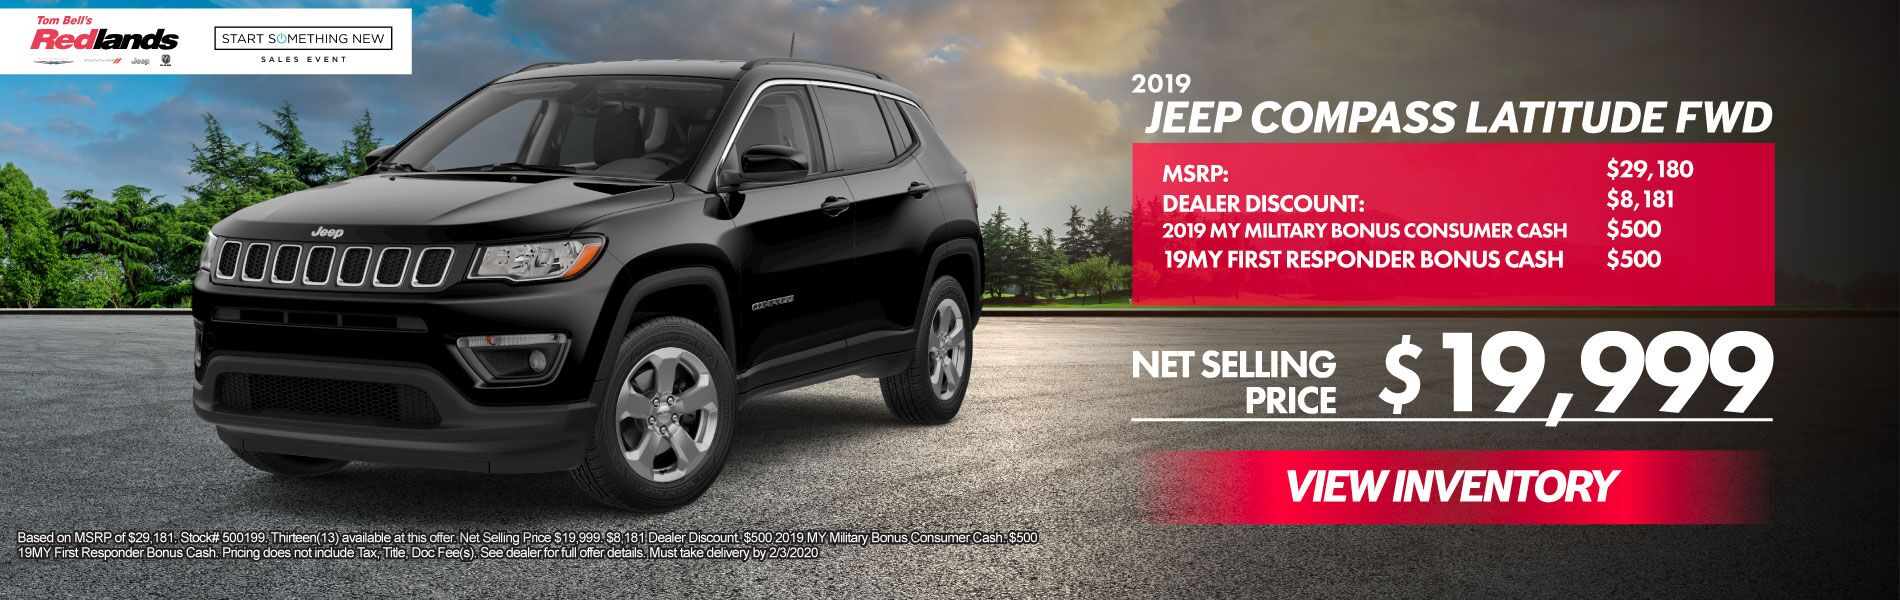 JANUARY SPECIALS - 2019 Jeep Compass Lat FWD